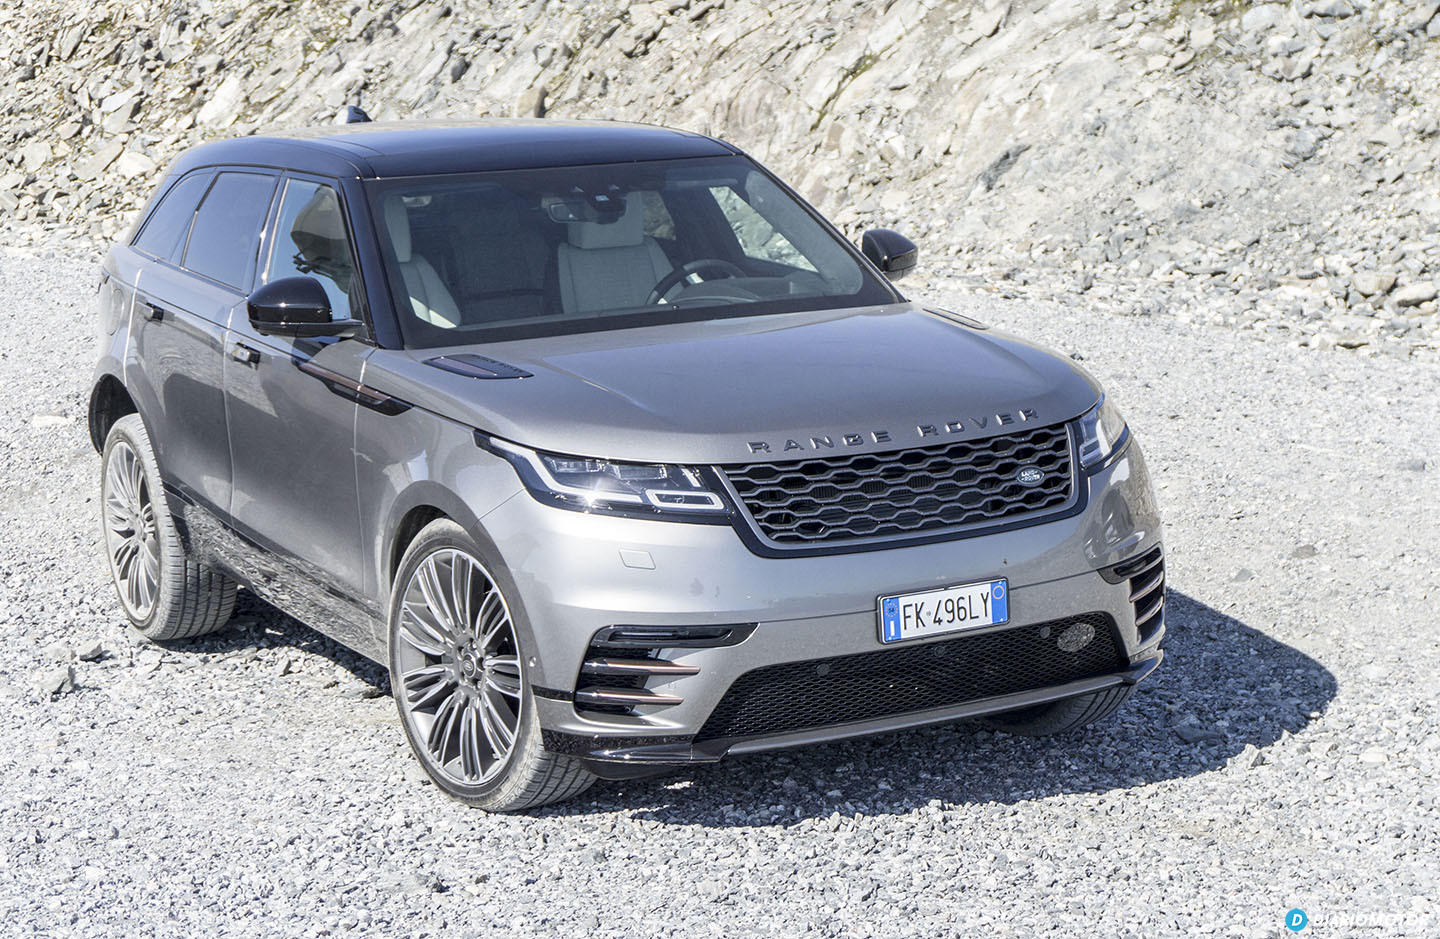 range rover velar archives amaxofilia. Black Bedroom Furniture Sets. Home Design Ideas